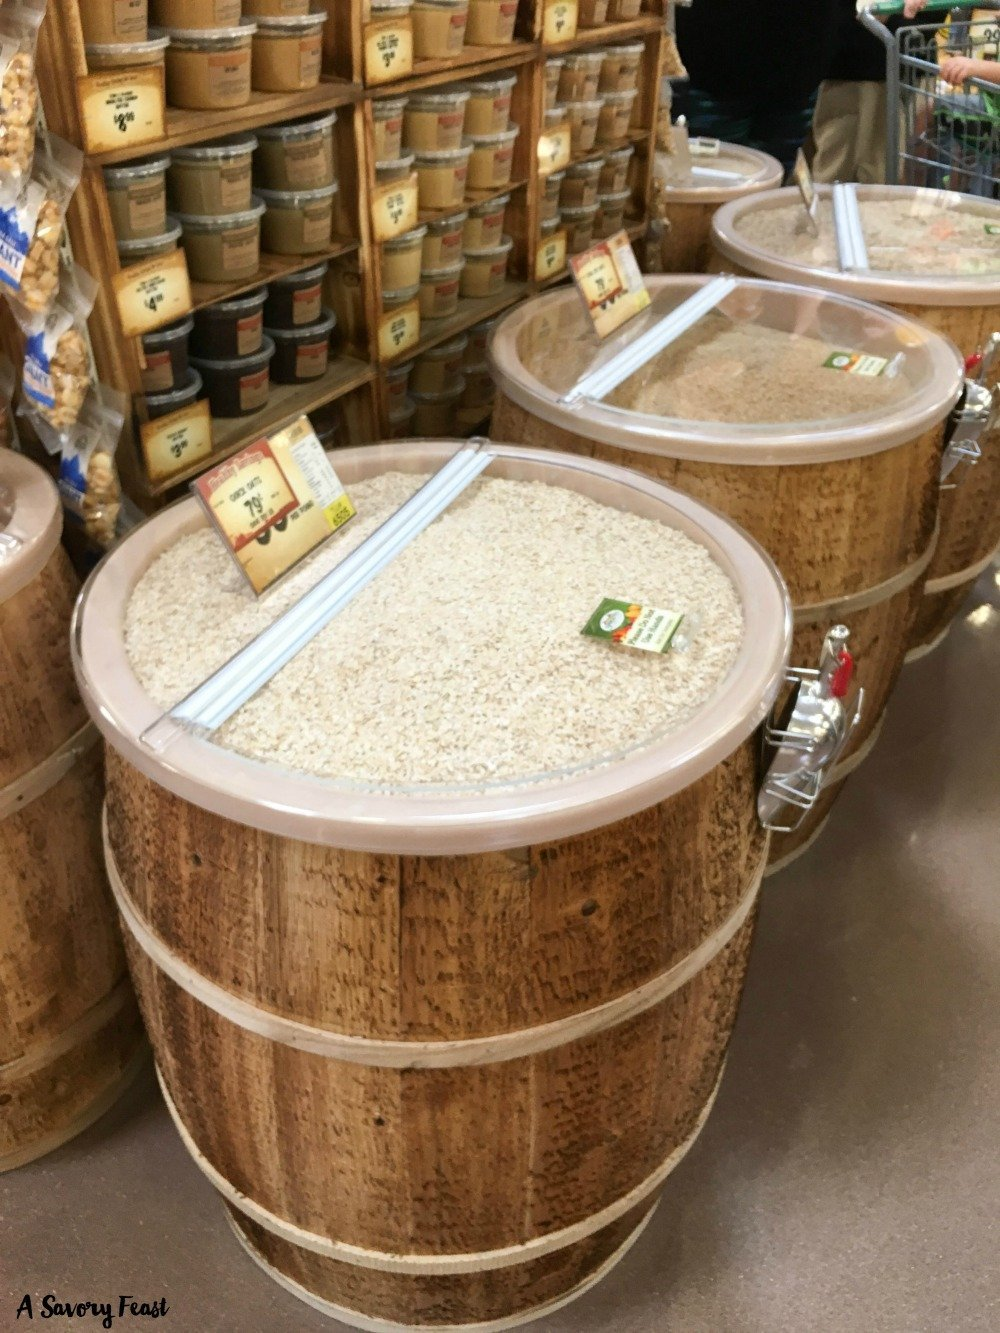 Buy in bulk at Sprouts